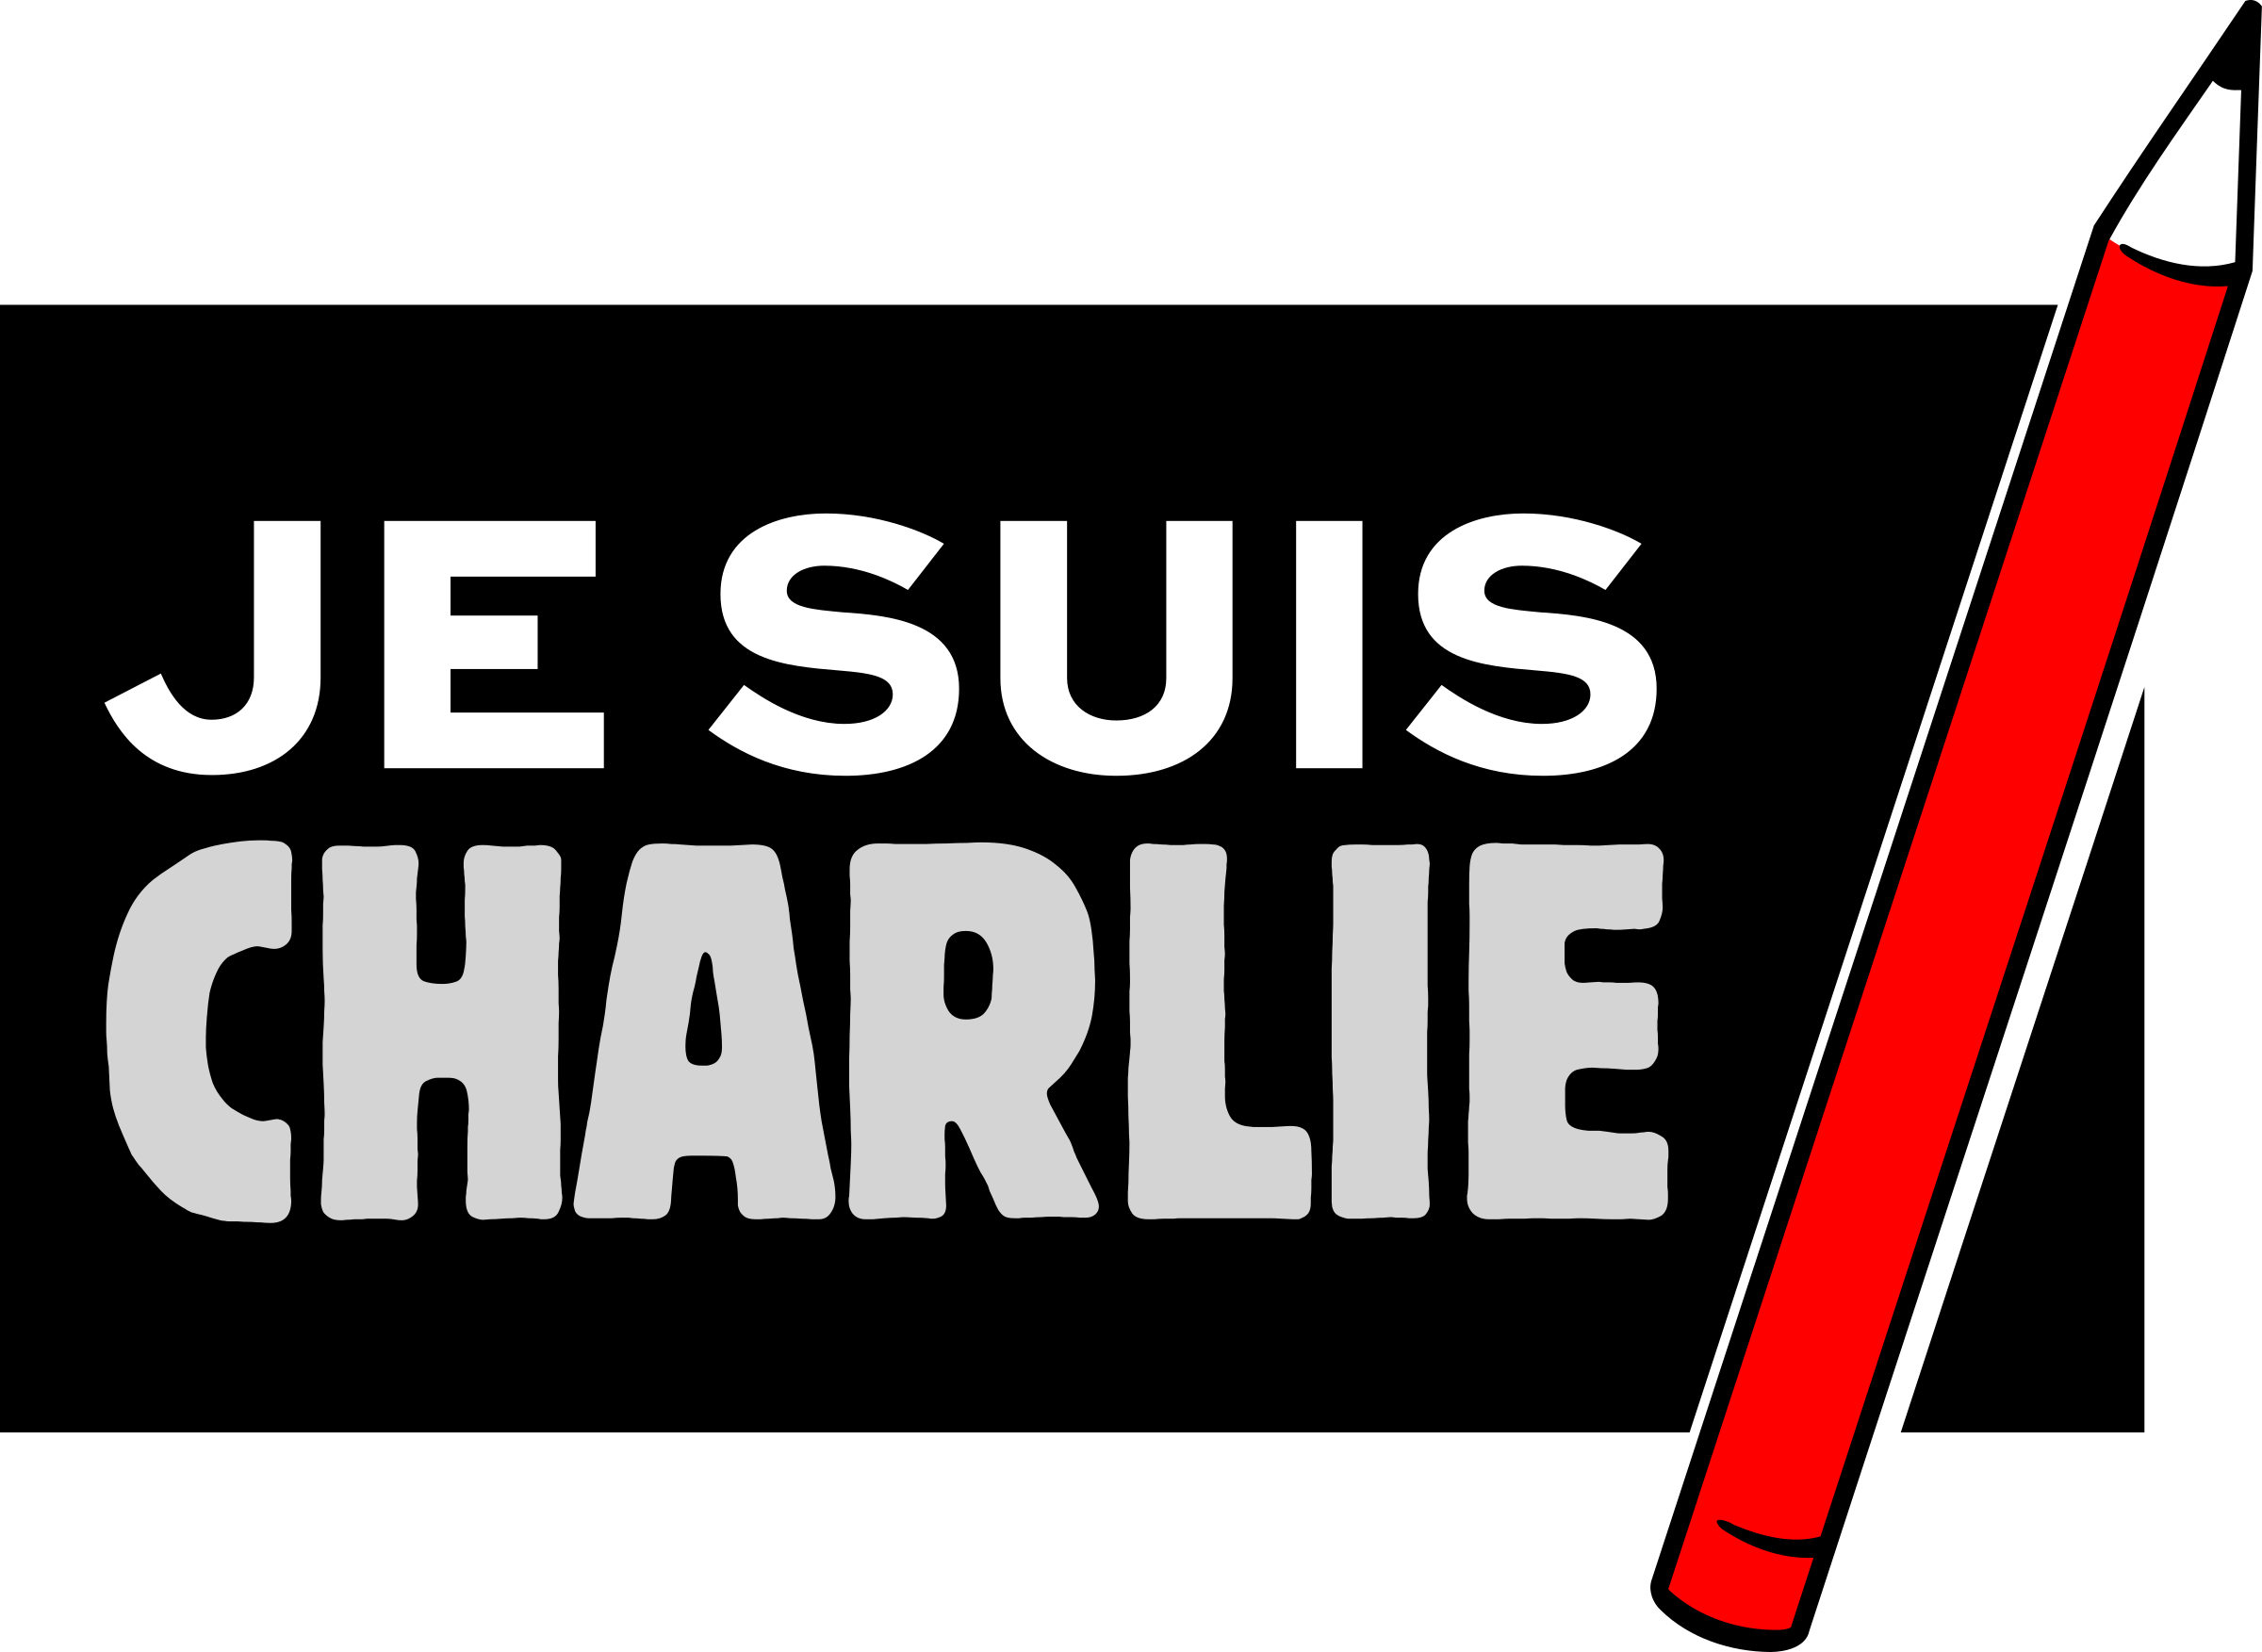 Je suis charlie of. Freedom clipart press